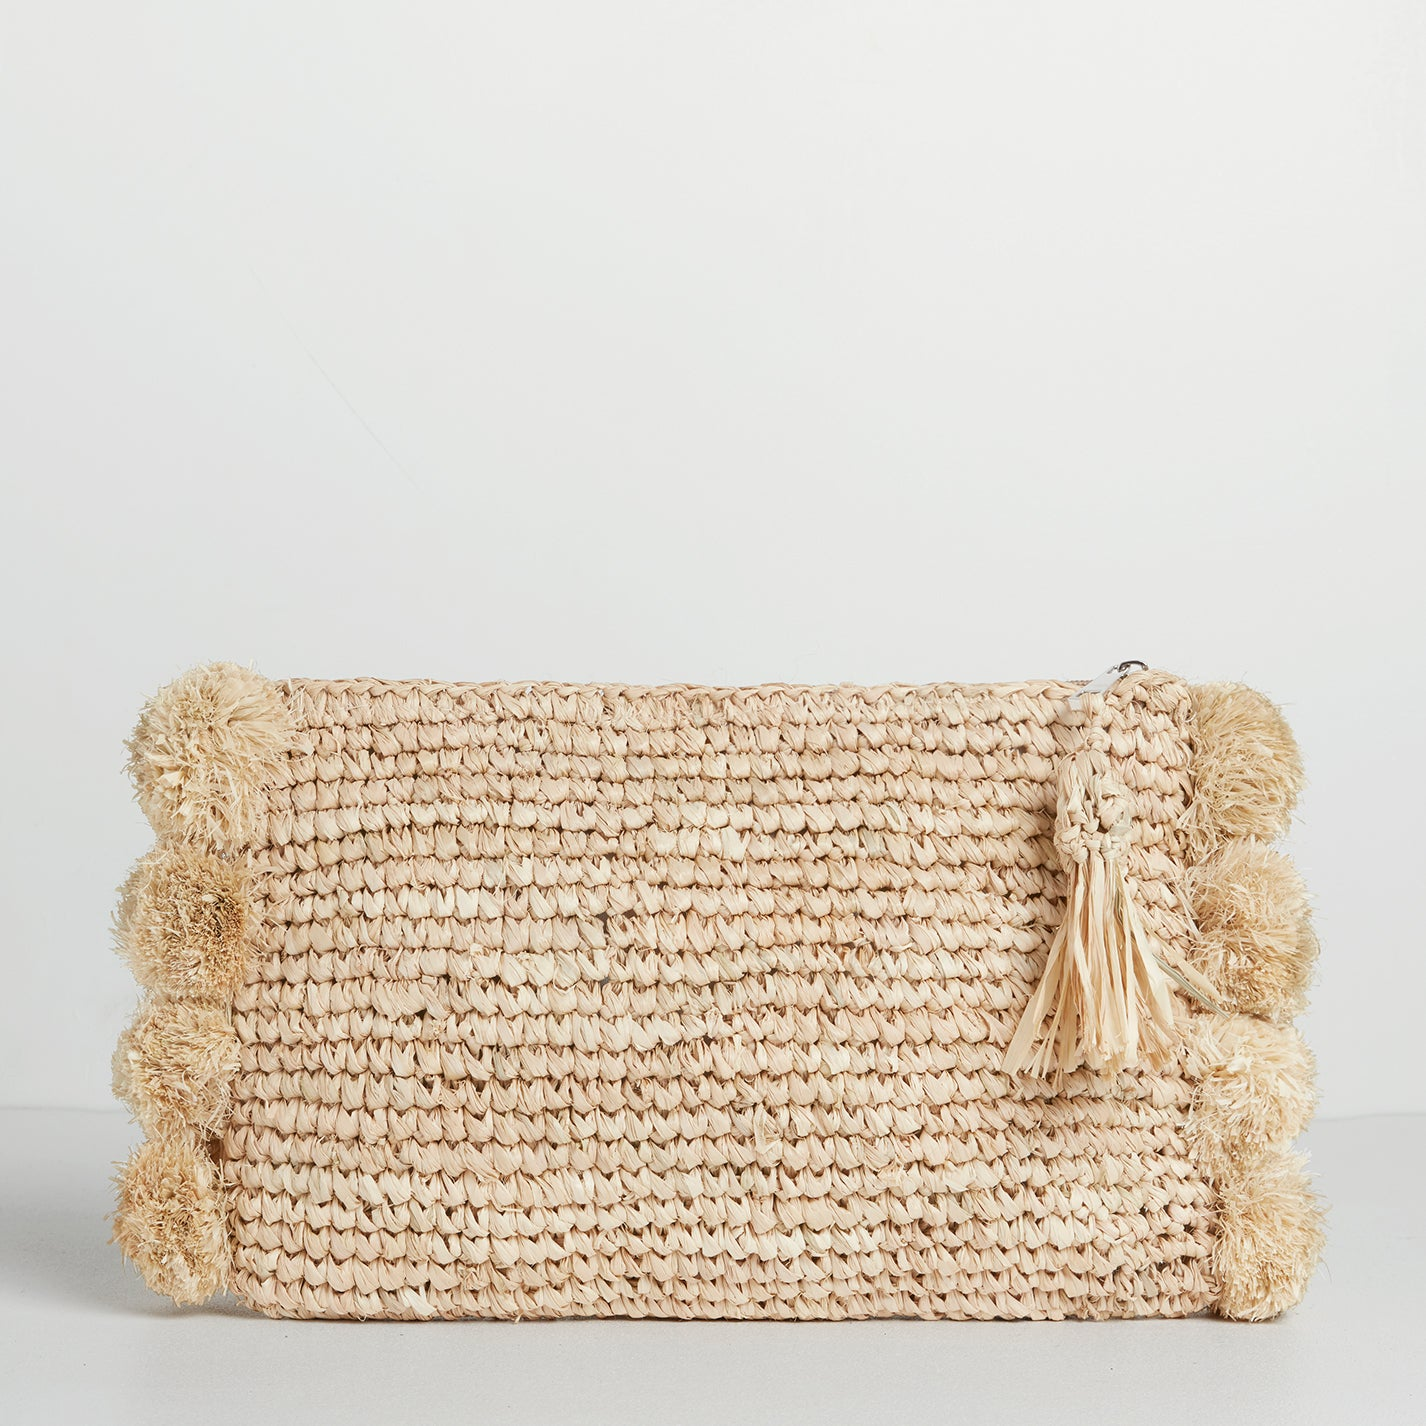 Mahon Clutch Bag